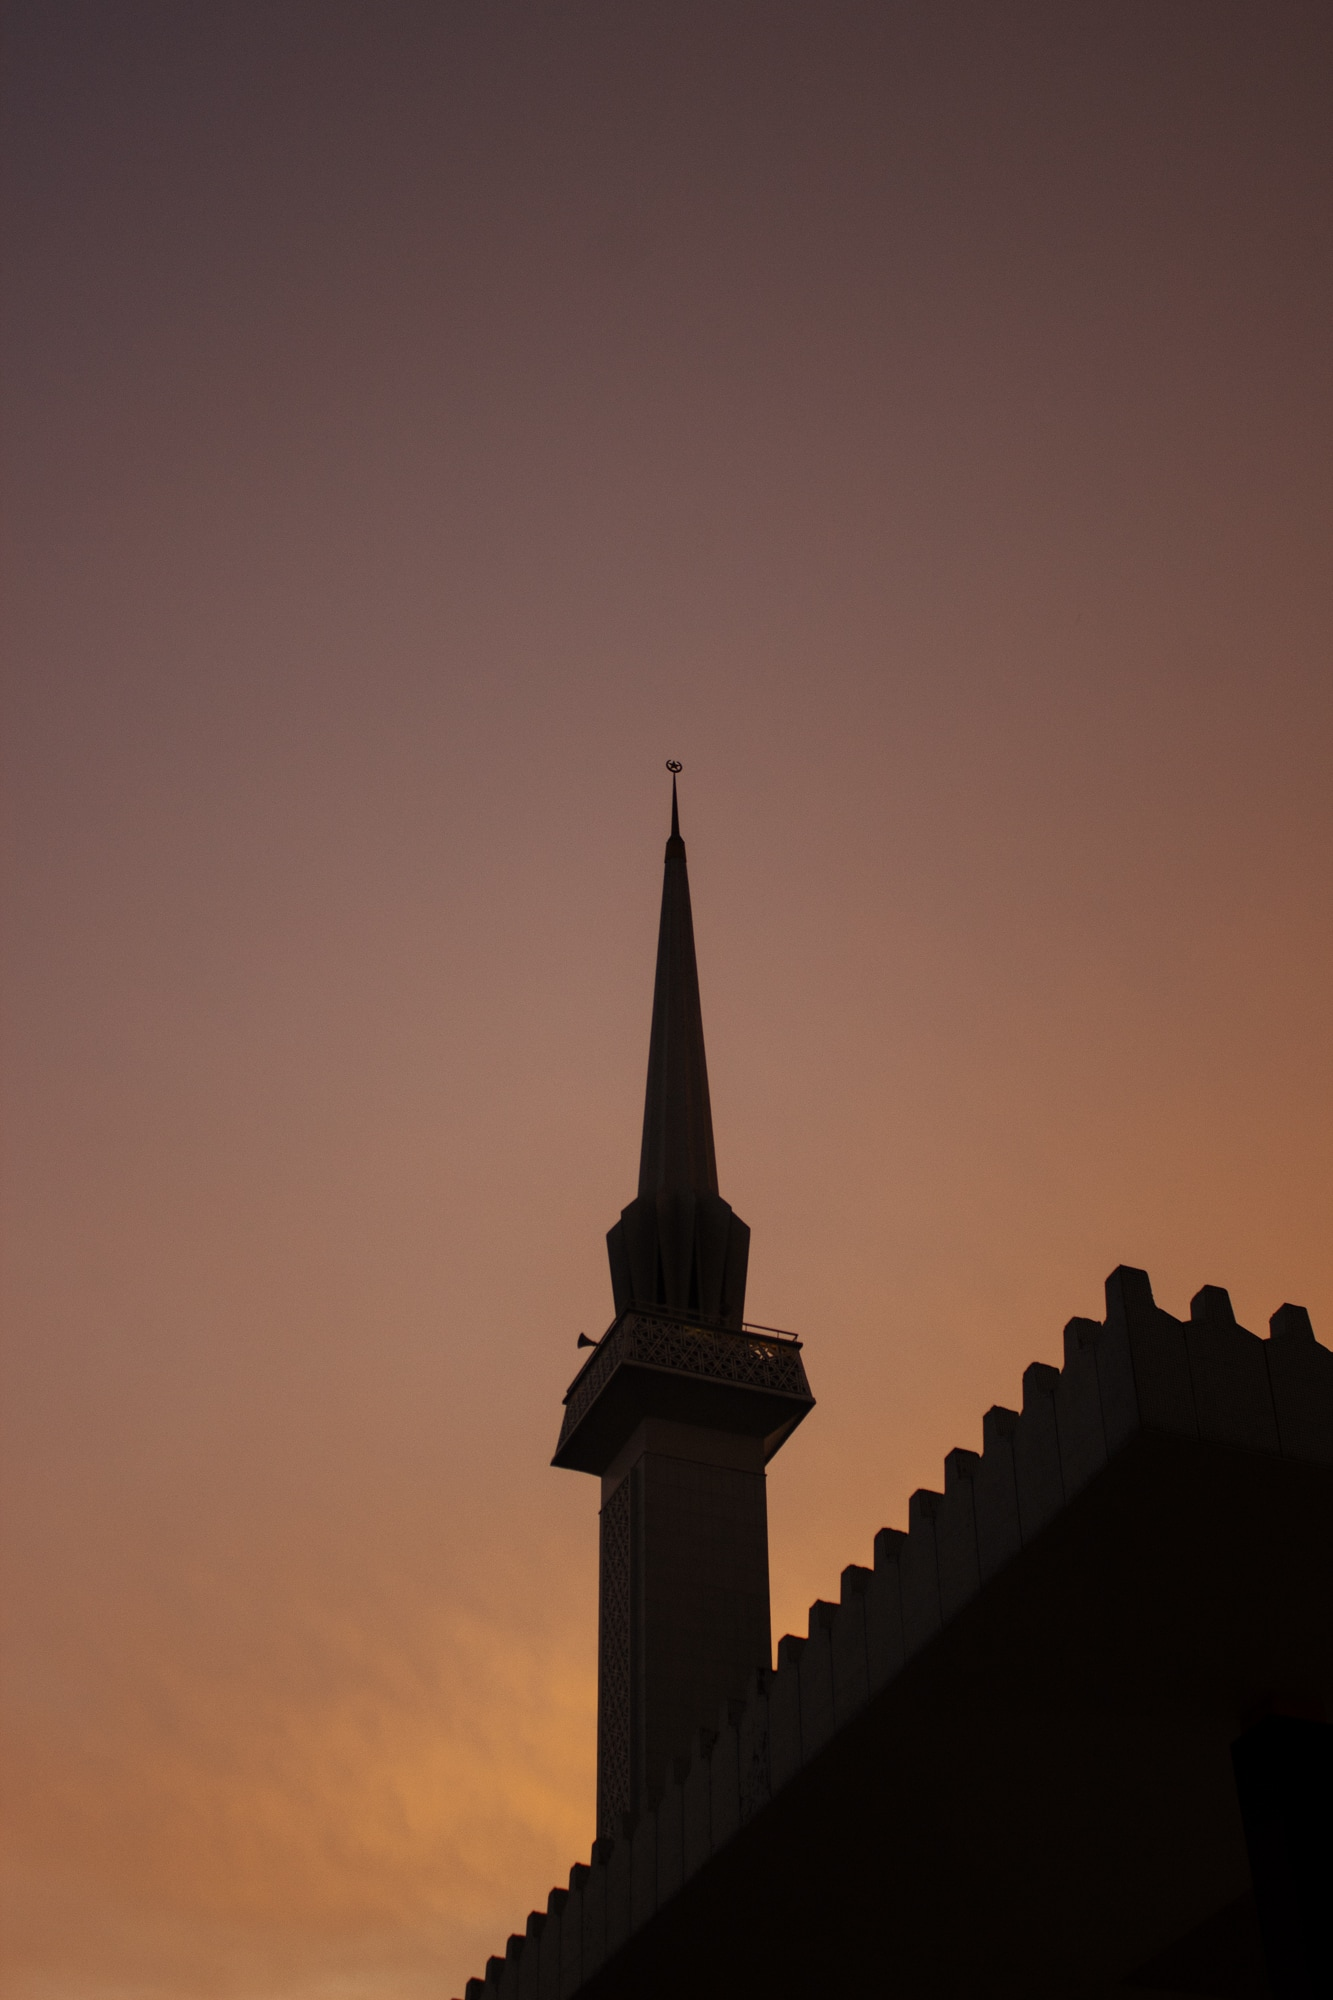 National Mosque of Malaysia Minaret